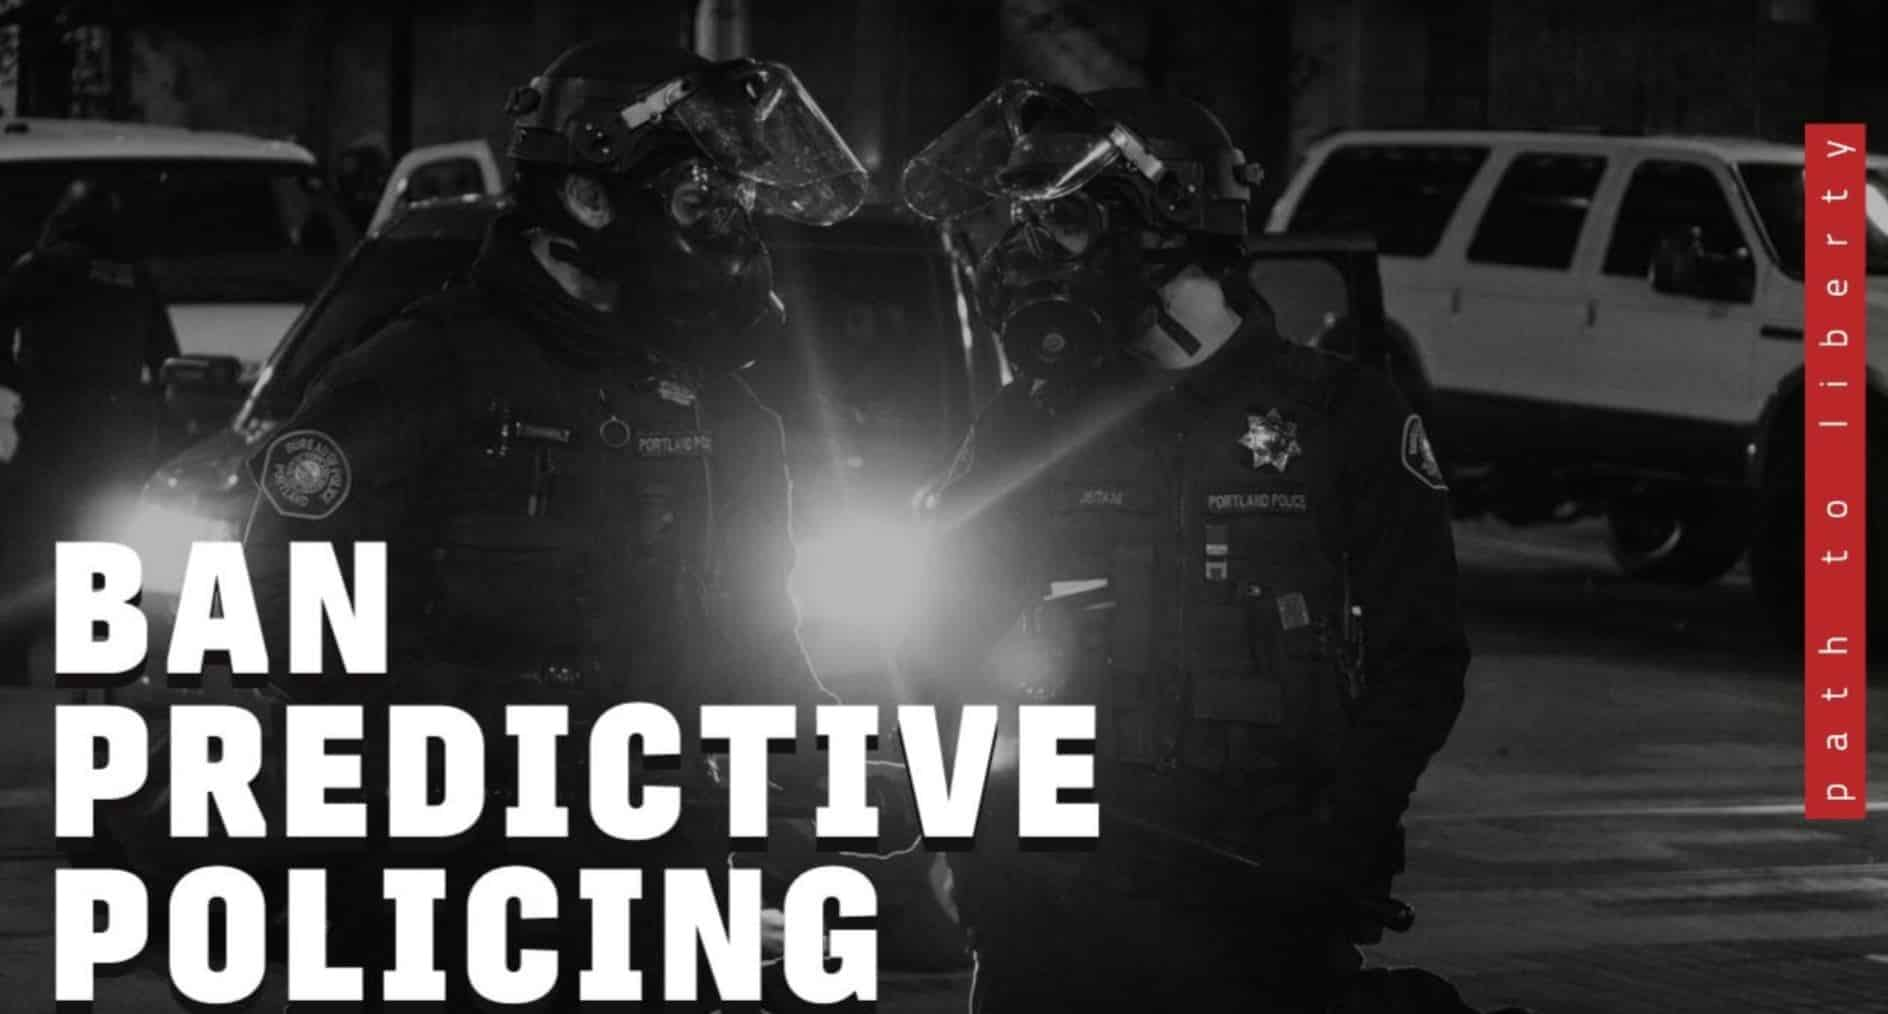 Predictive Policing Banned in 4 Cities. More Soon? 1